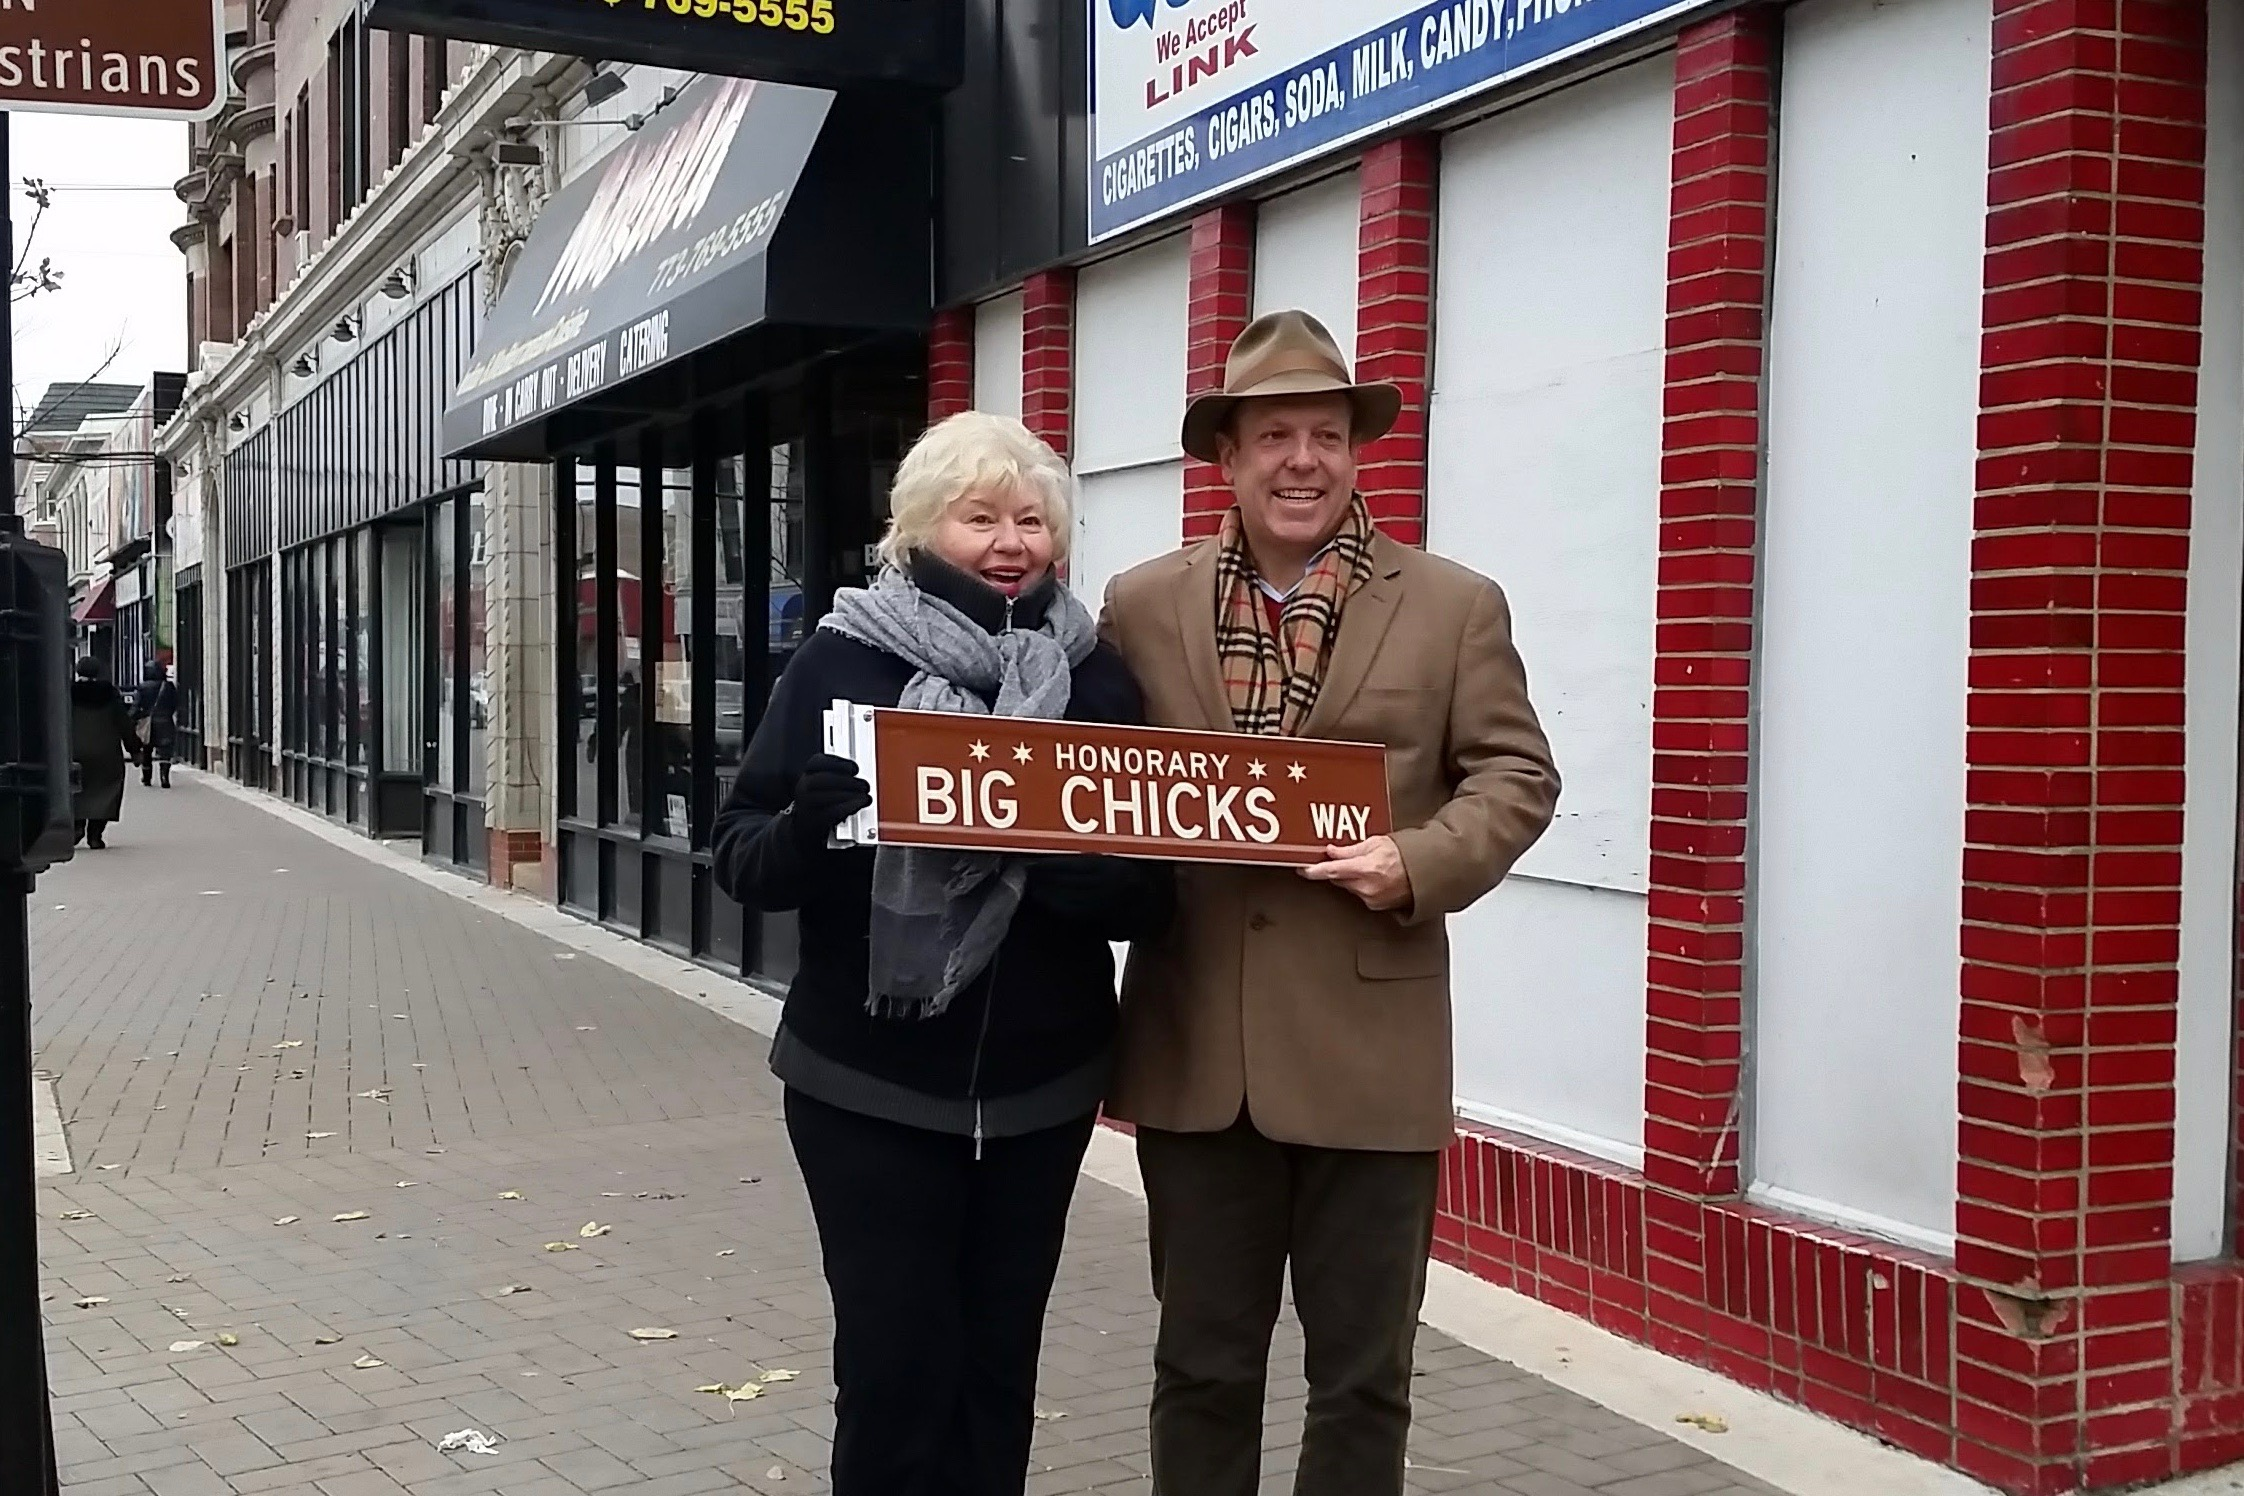 big chicks gets big honors after decades of supporting lgbtq